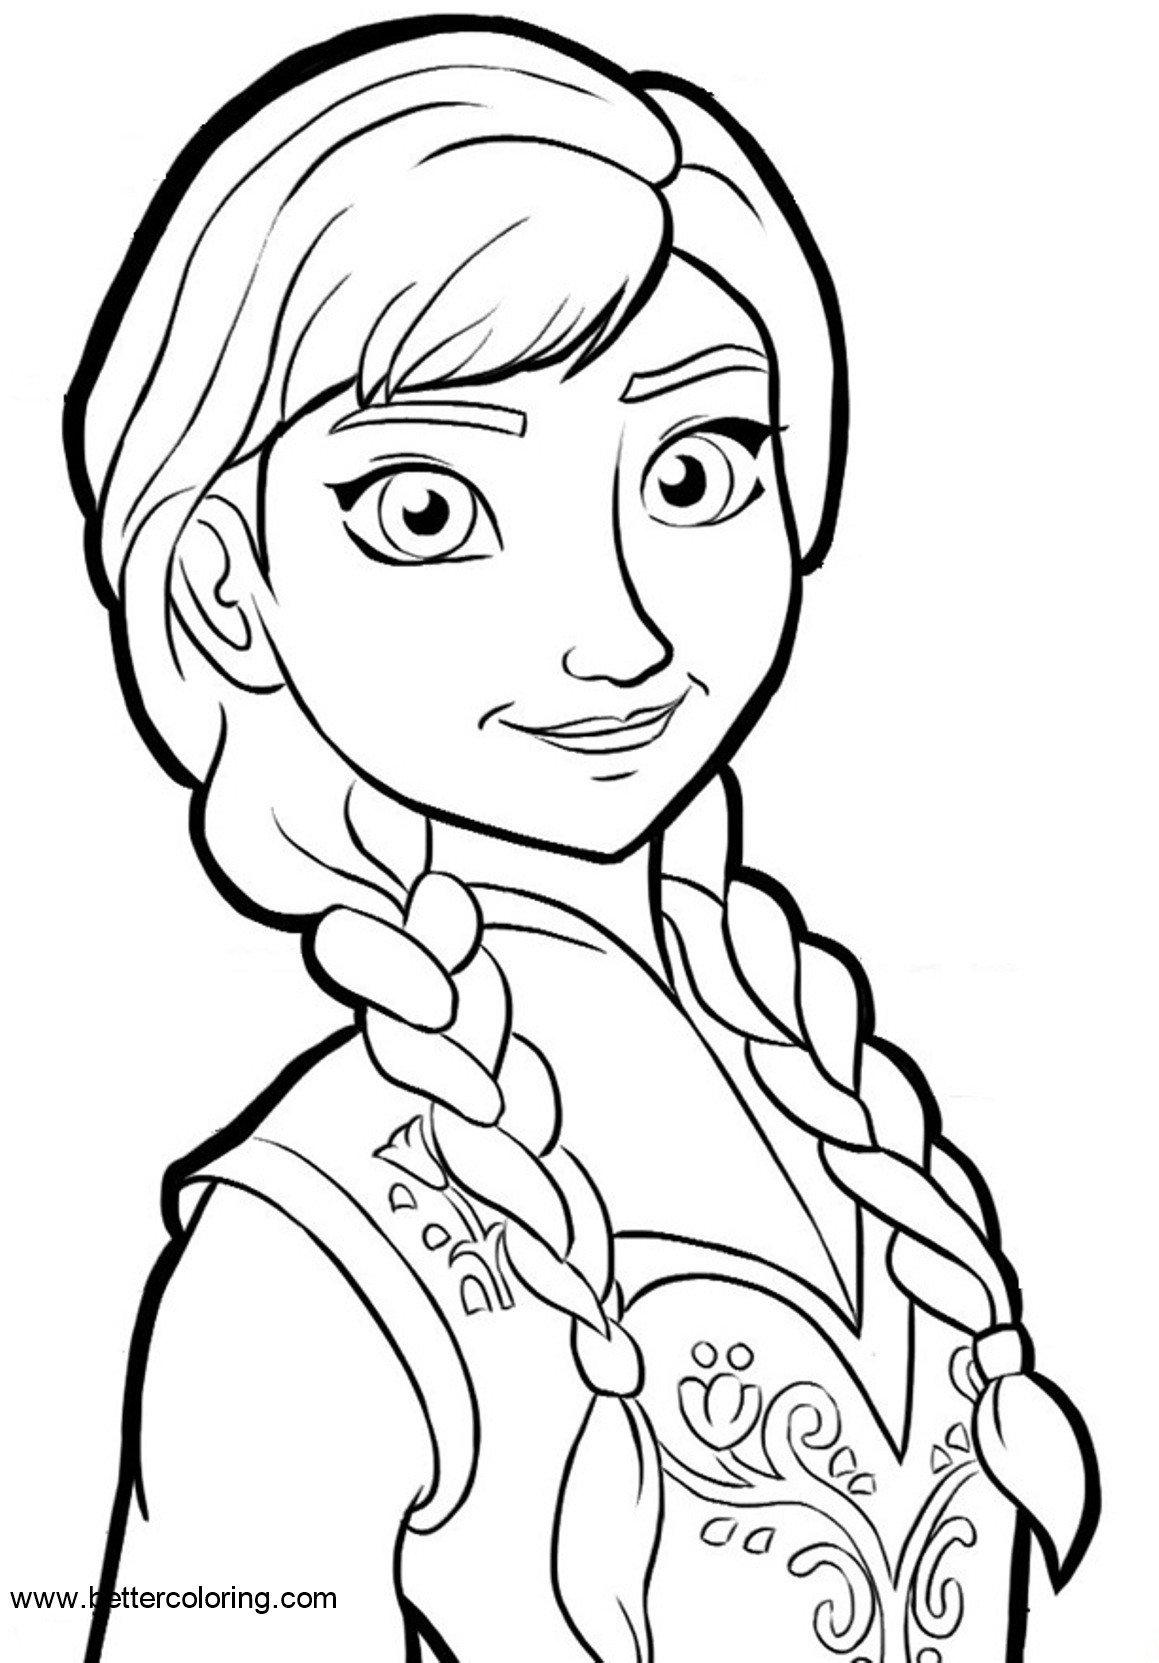 Free Frozen Princess Anna Coloring Pages printable